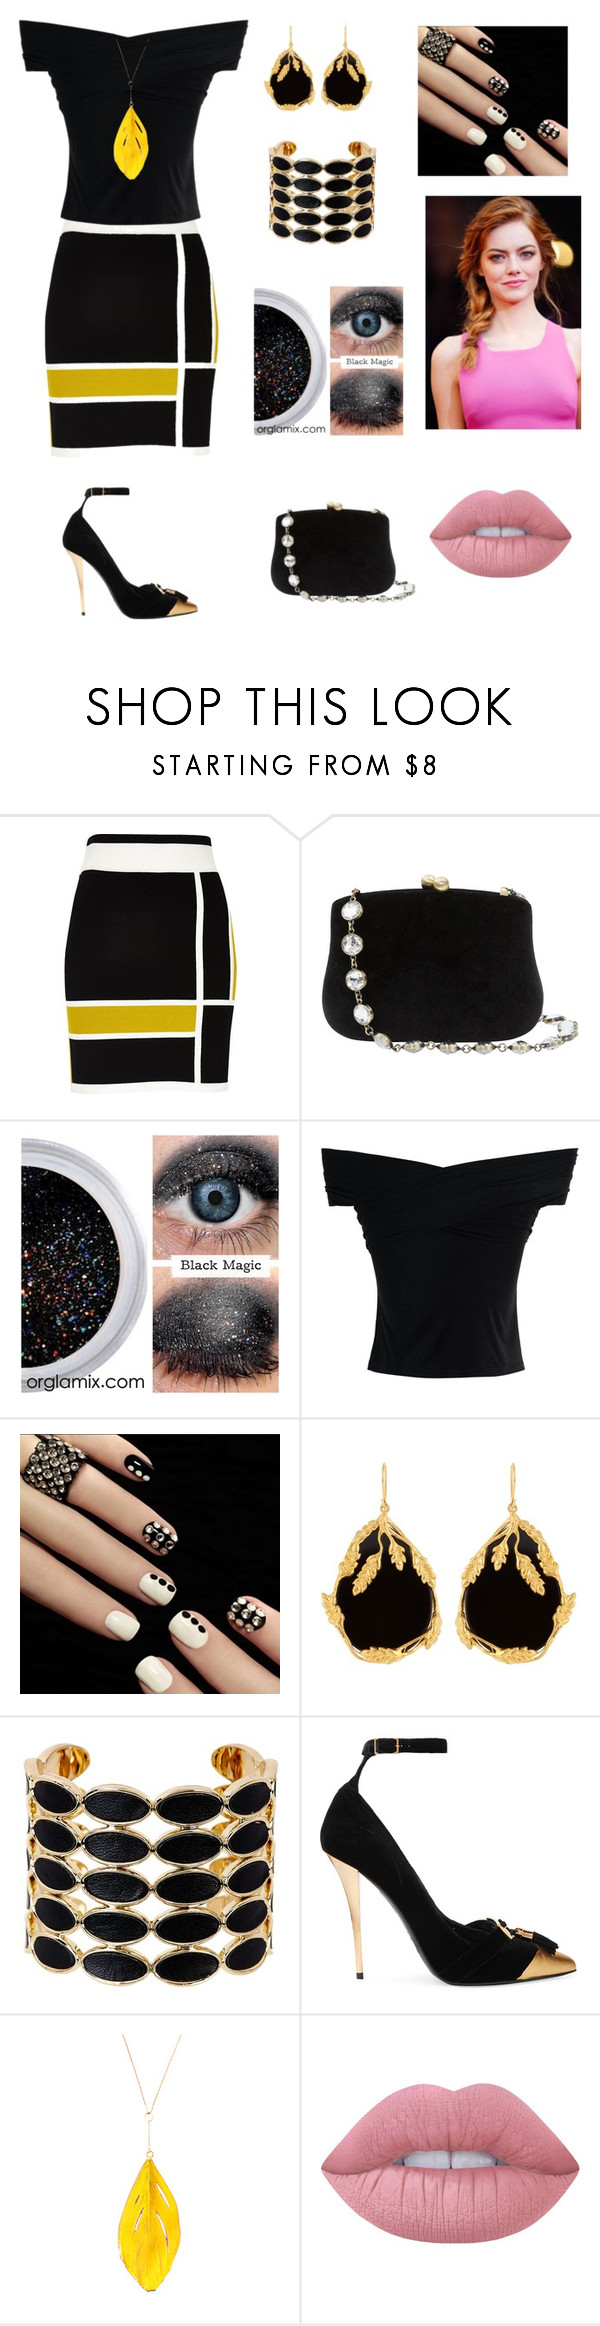 """""""Sin título #95"""" by aolivero ❤ liked on Polyvore featuring River Island, Serpui, Chicwish, Aurélie Bidermann, House of Harlow 1960, Balmain, GALA and Lime Crime"""